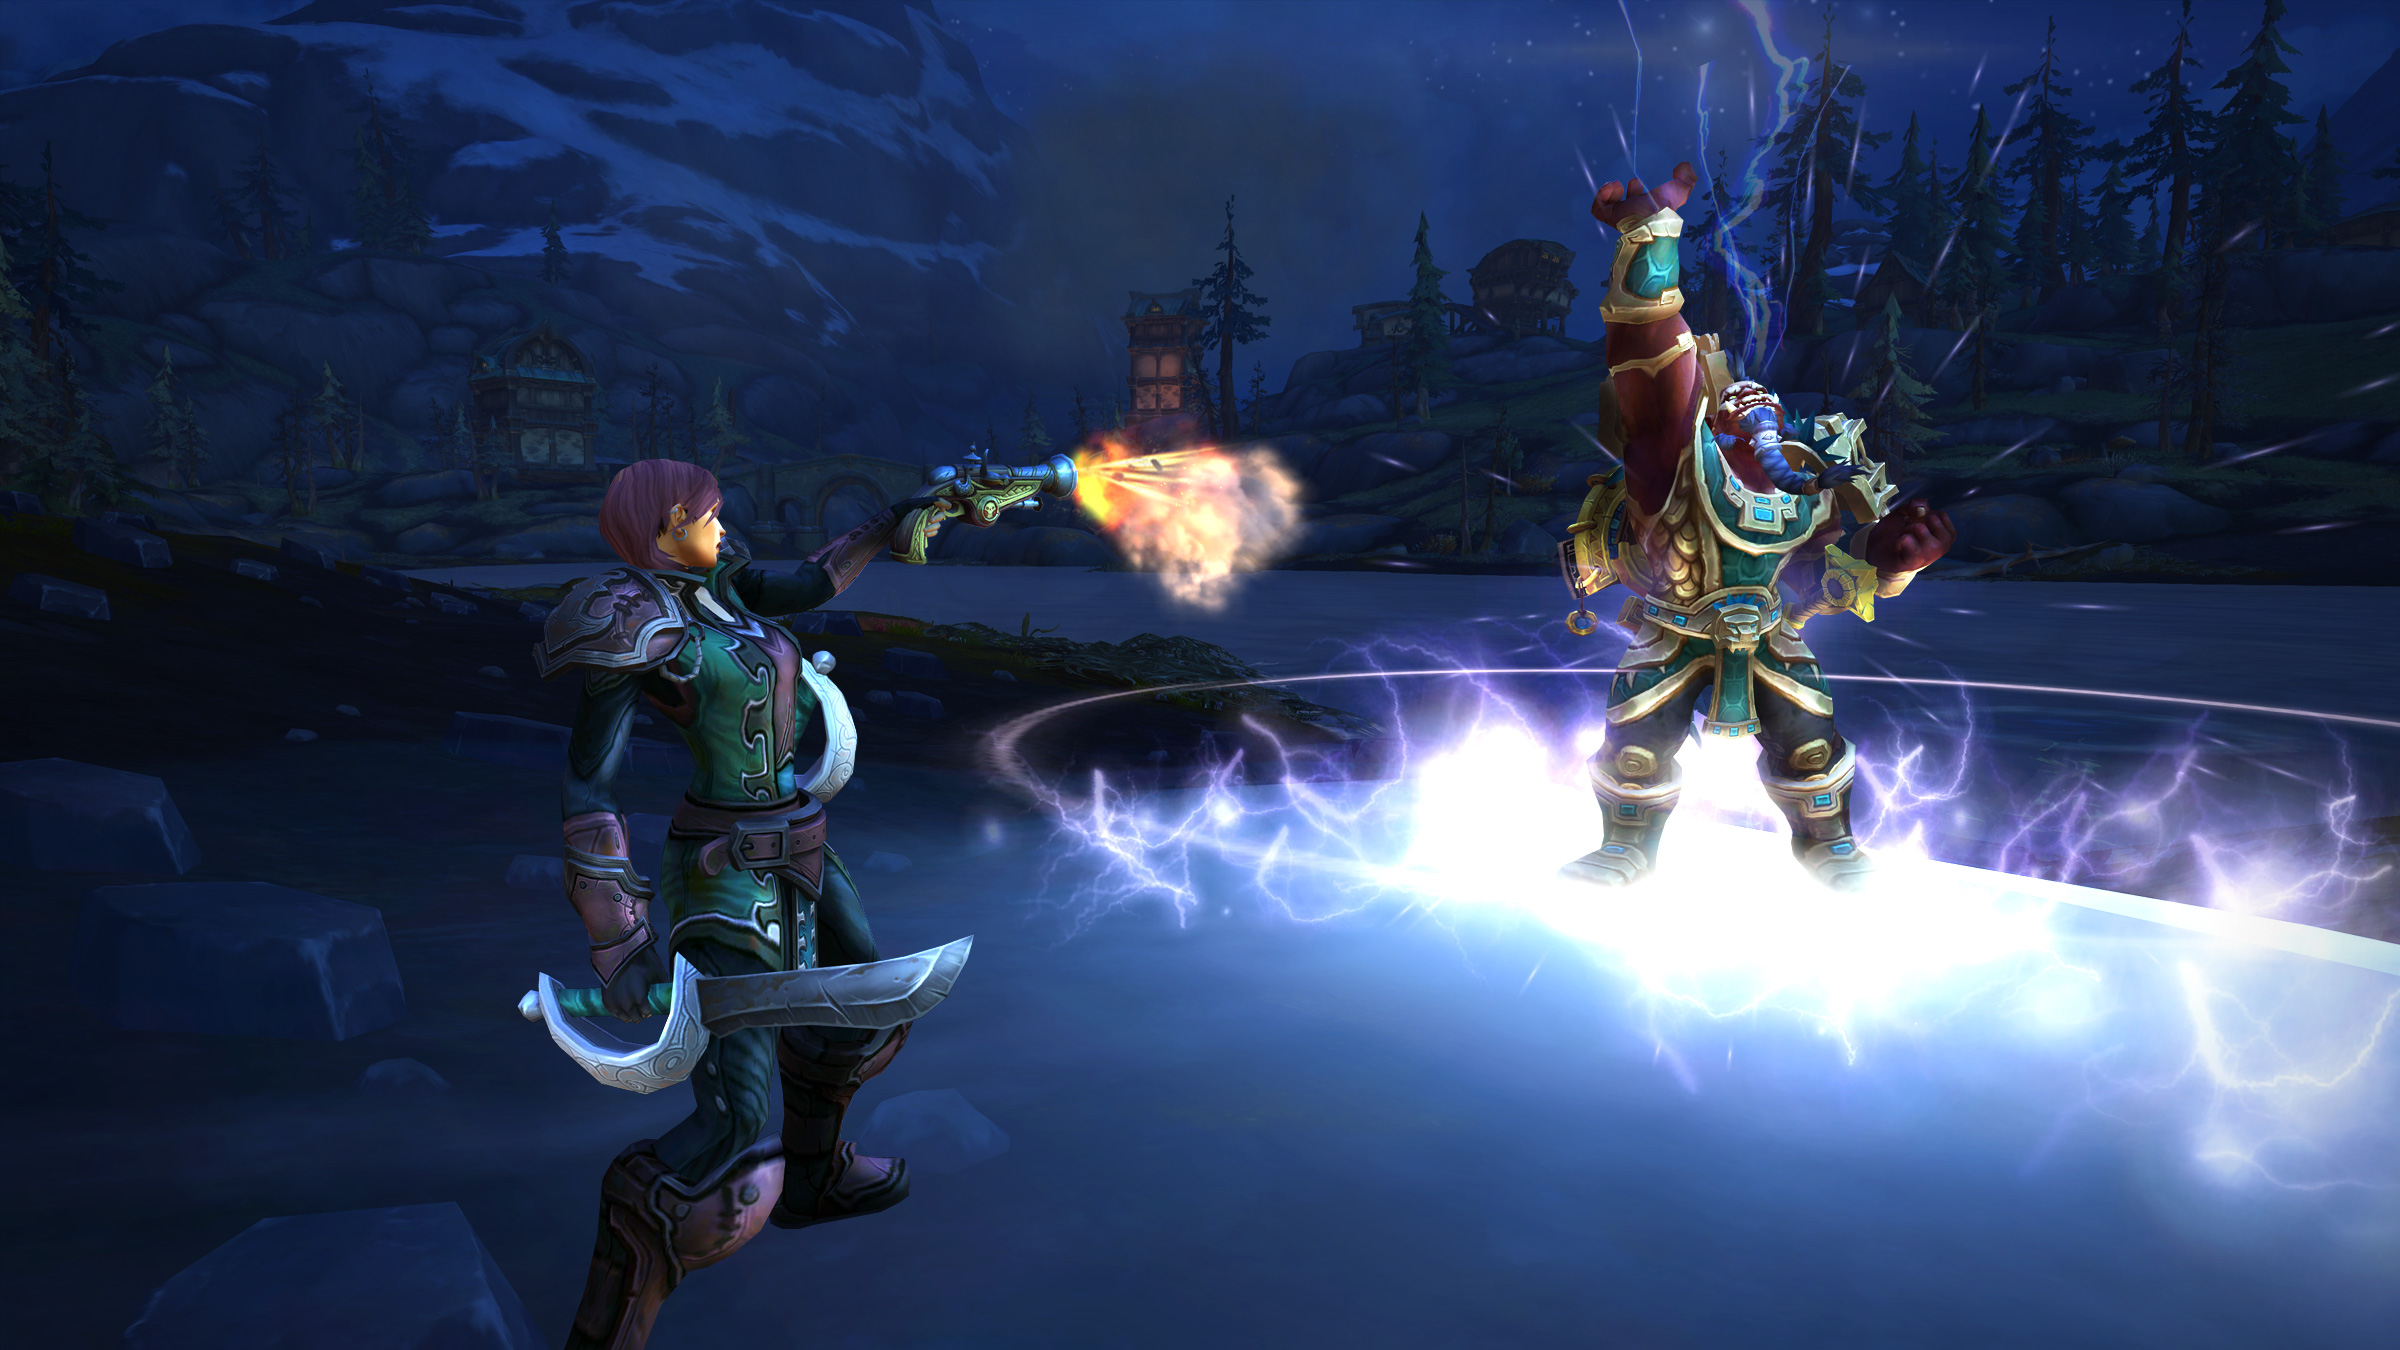 Battle for Azeroth Preview: War Mode, PvP Talents, and More